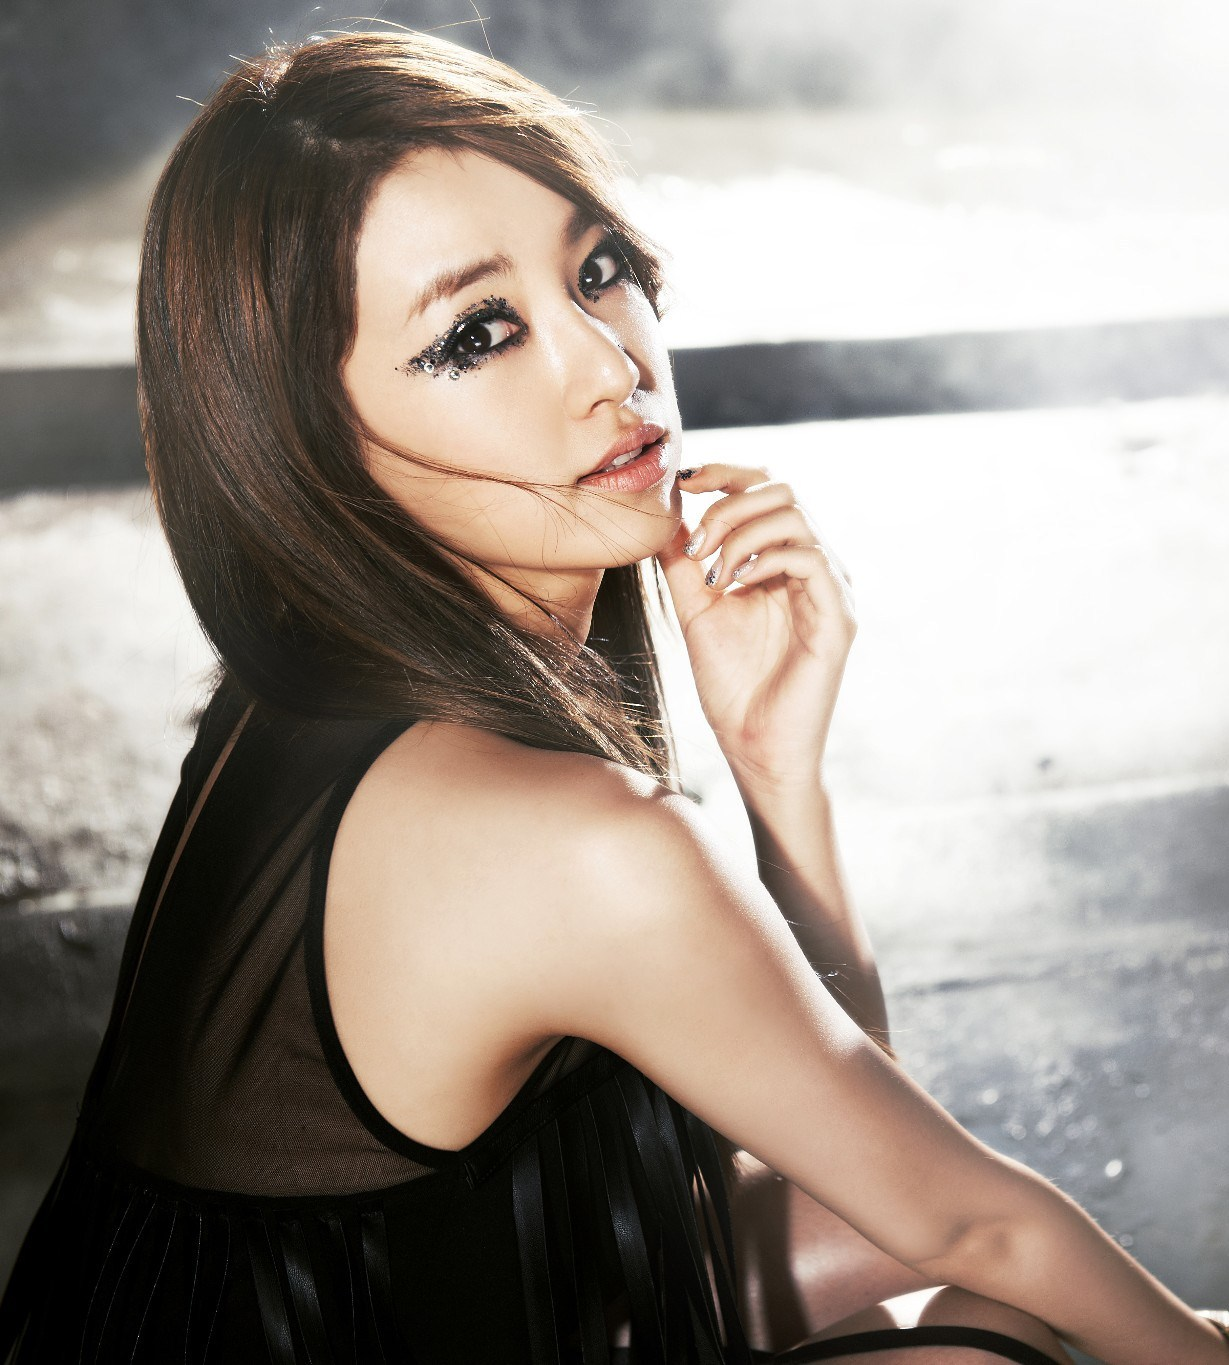 Lee Jooyeon Backgrounds on Wallpapers Vista